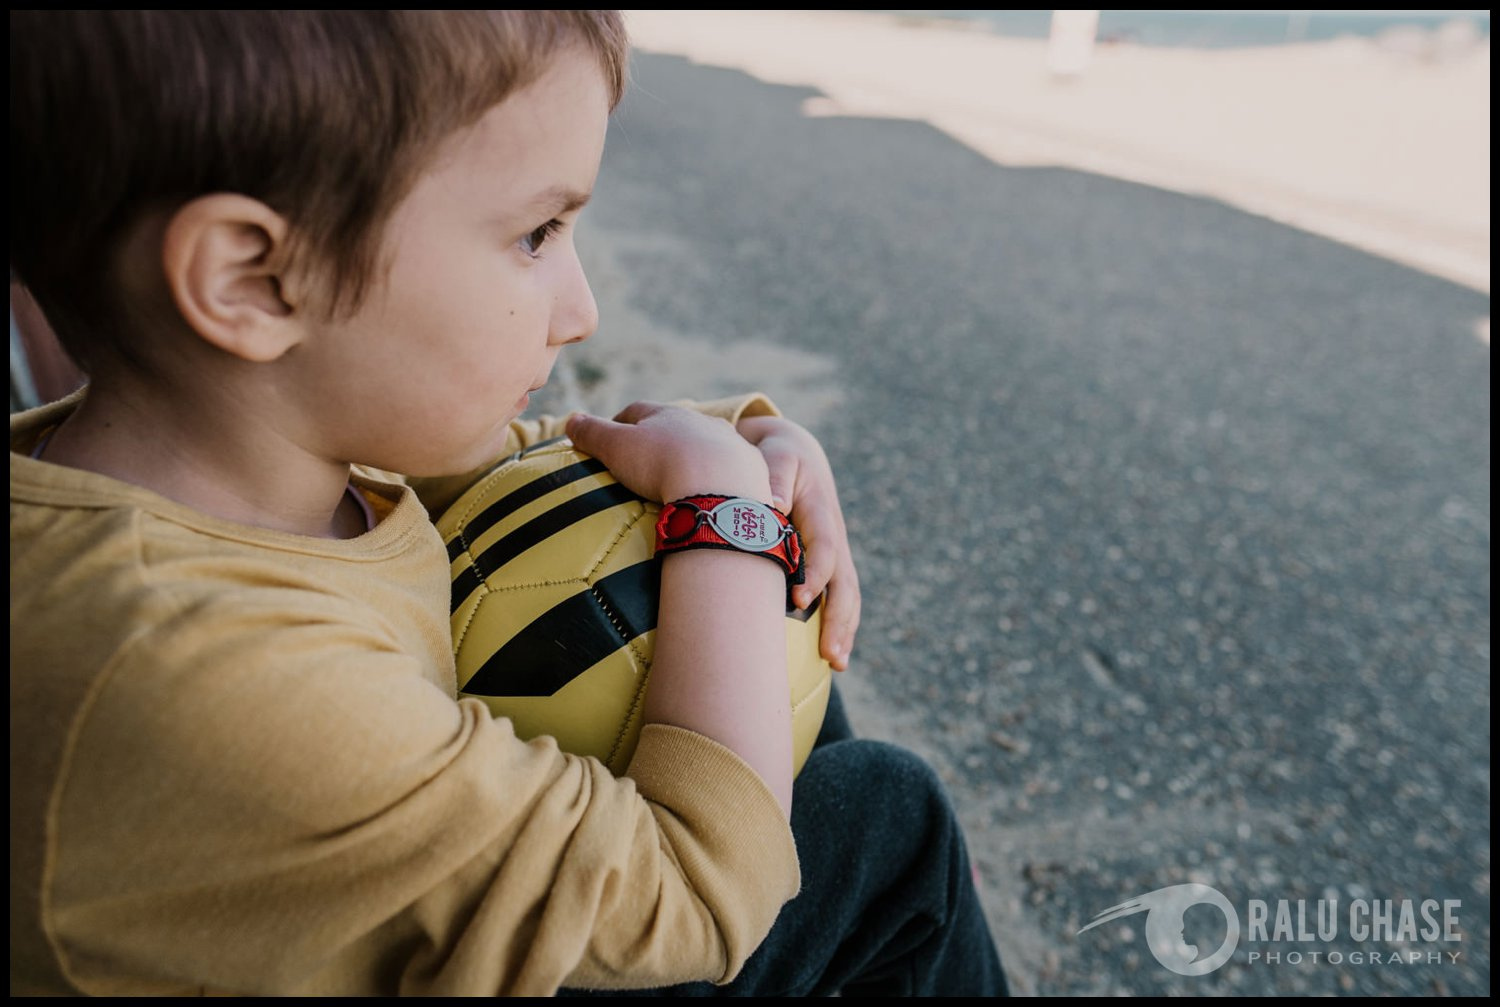 little boy holding tight to a football while wearing a medic alert bracelet. the bracelets have important medical information engraved on them so that people can get quick access to medical help in case of an emergency